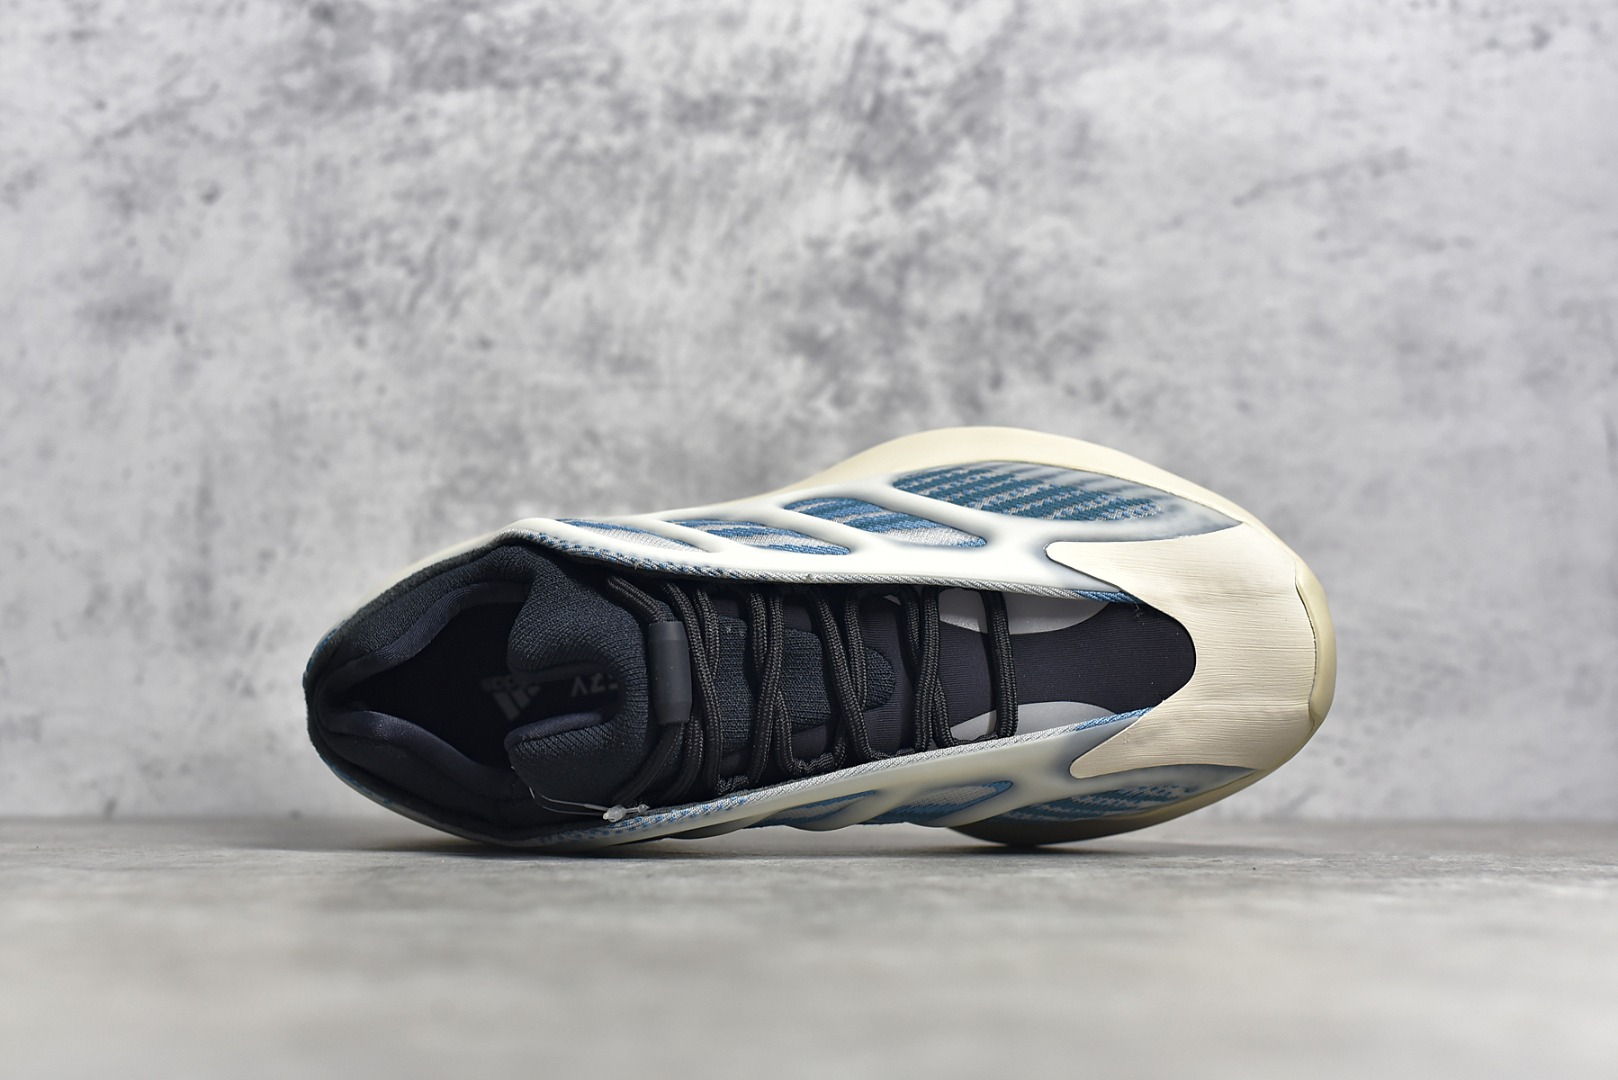 椰子700V3蓝晶石新配色OG纯原版本 Adidas originals Yeezy 700 V3 Kyanite蓝晶石 极光2.0 货号:GY0260-潮流者之家